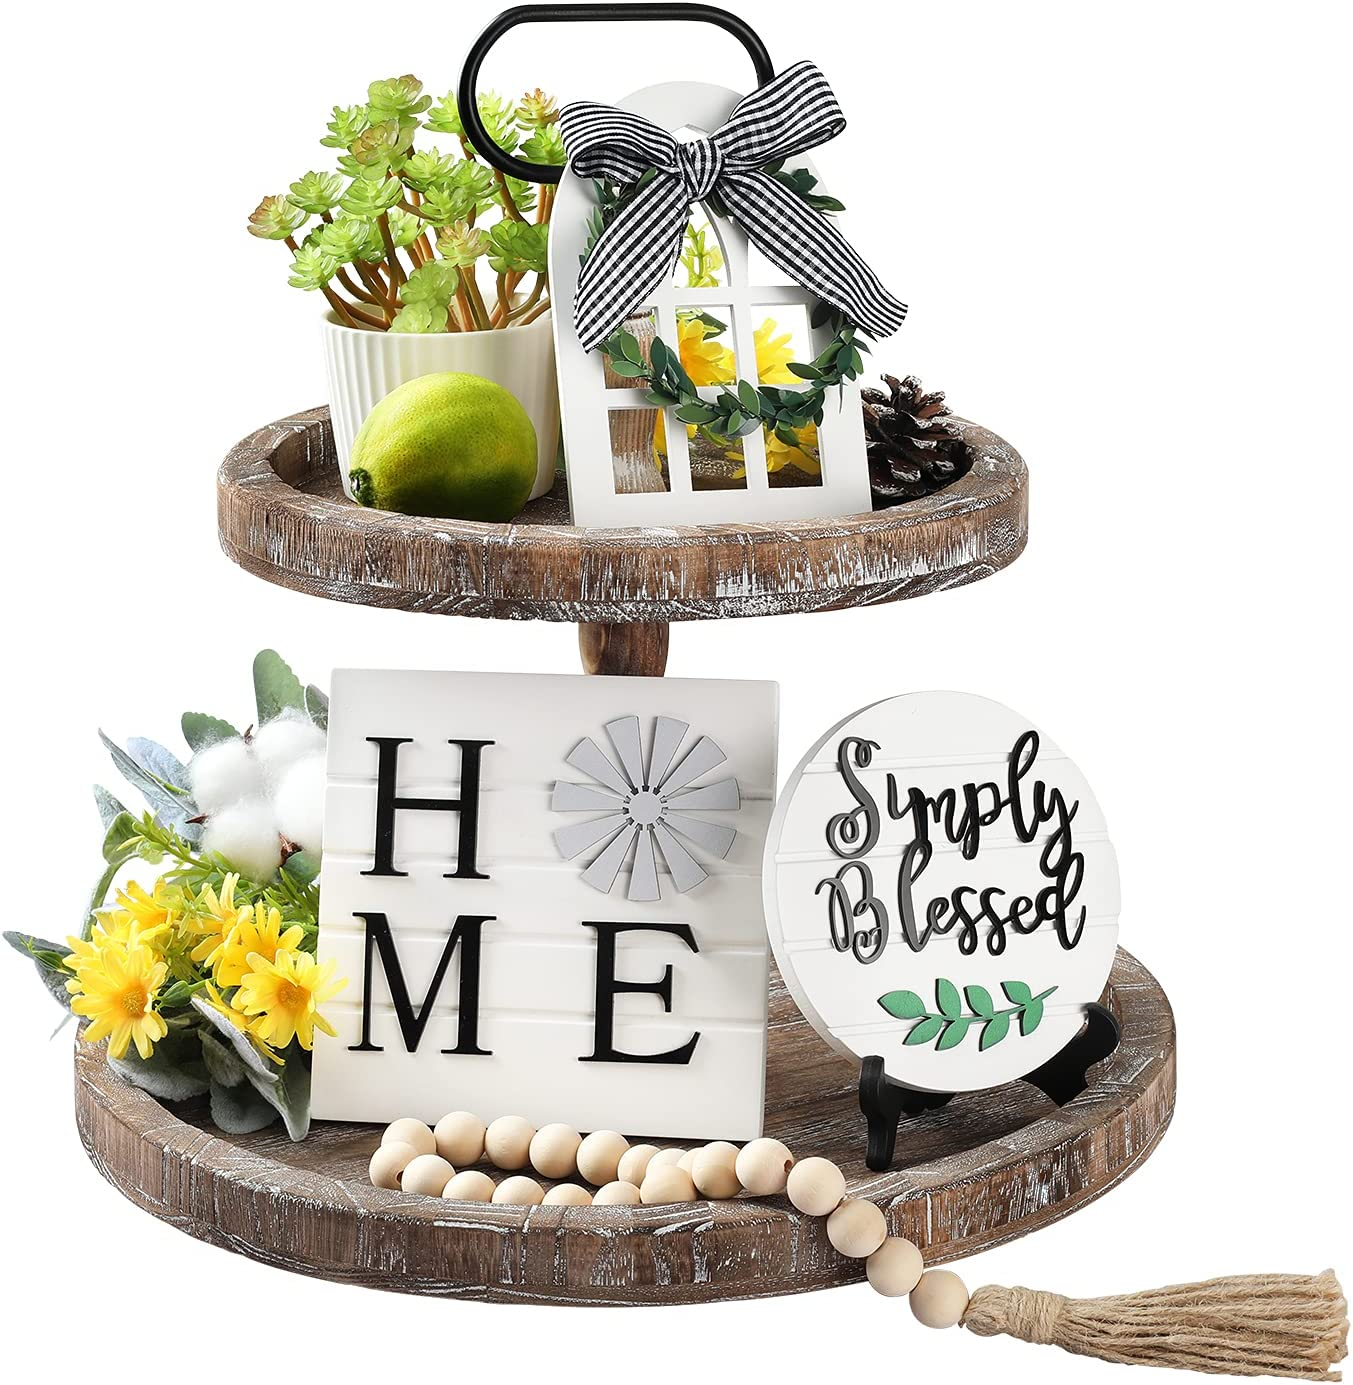 LIBWYS 4 Pcs Farmhouse Decors for Tiered Tray Farmhouse Home Decor Mini Signs Simply Blessed Home Windmill Wooden Beads Garland Rustic Kitchen Decor